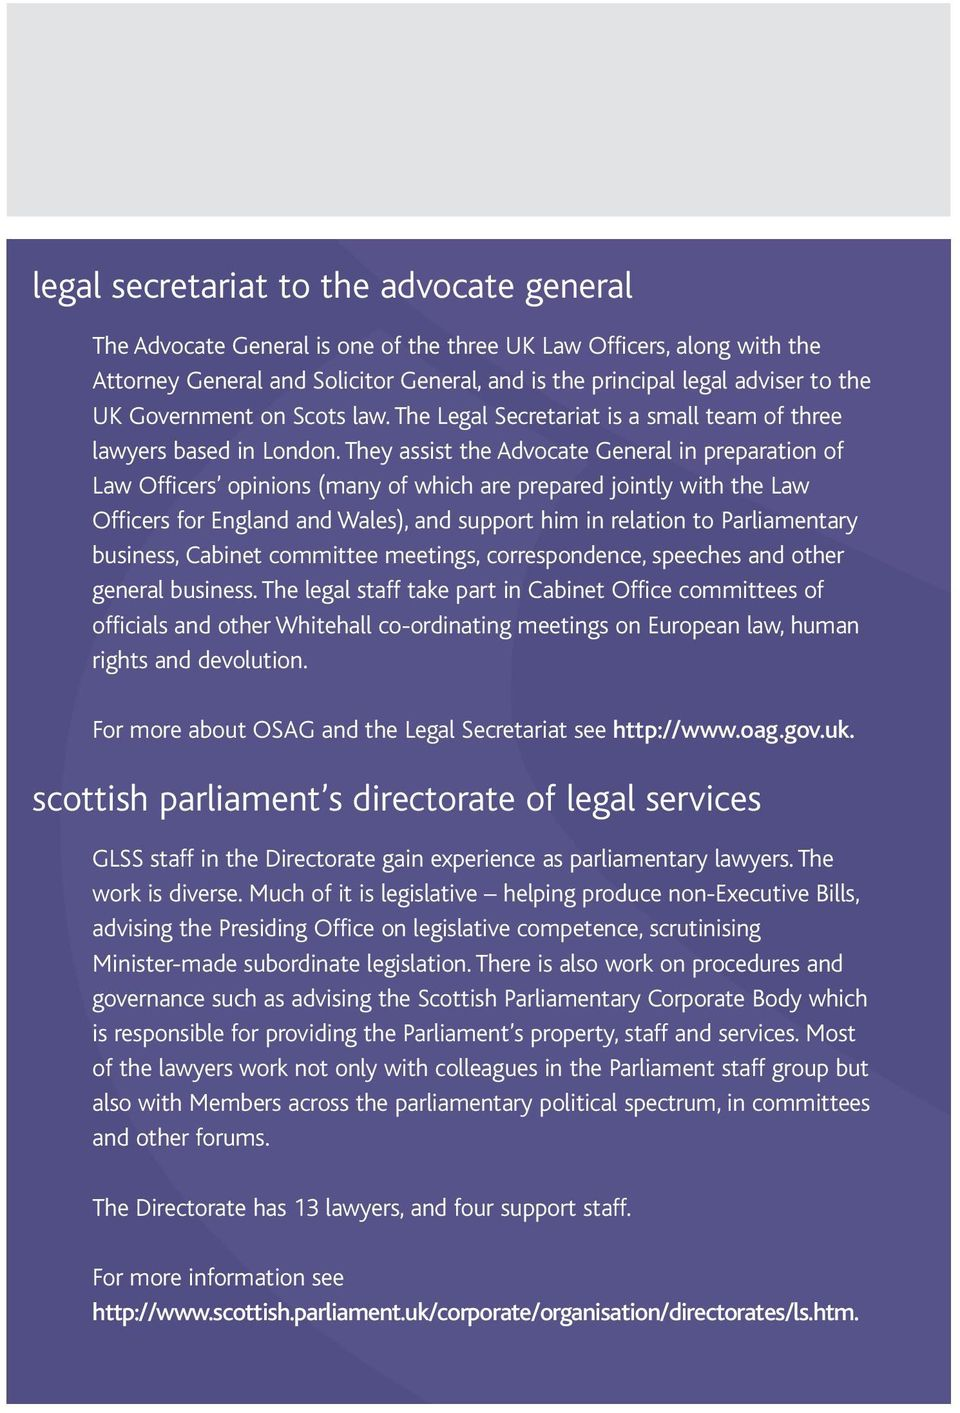 They assist the Advocate General in preparation of Law Officers opinions (many of which are prepared jointly with the Law Officers for England and Wales), and support him in relation to Parliamentary